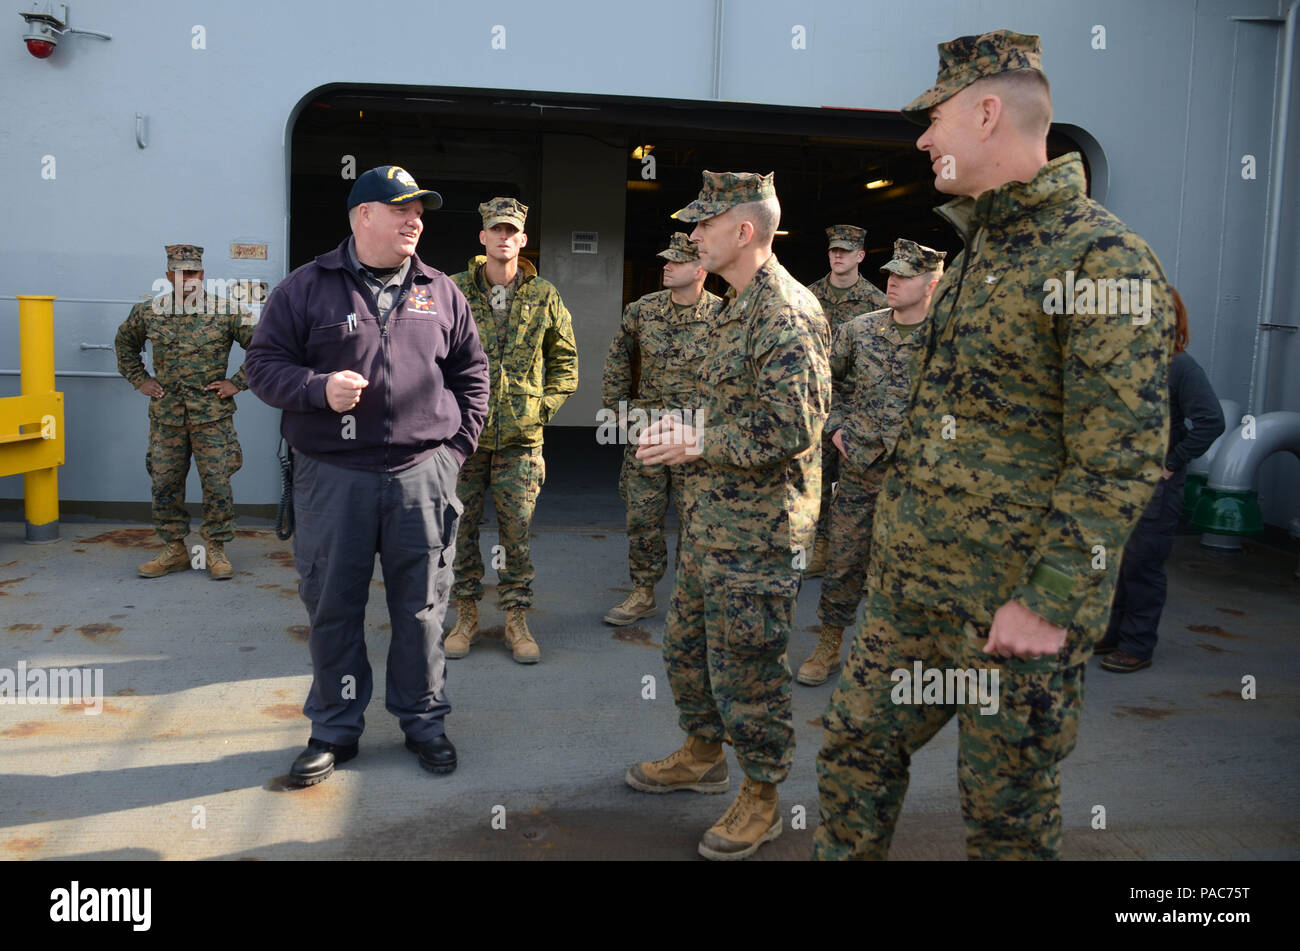 160310-N-WJ640-017 GWANGYANG, South Korea (Mar. 10, 2016) — Marines with Combat Logistics Regiment (CLR-35), 3rd Marine Logistics Group, and 4th Marine Regiment, 4th Marine Division, receive a tour of USNS Sacagawea (T-AKE 2) from Edward Dickerson, master of the Sacagawea, March 8. CLR-35 will be joining the Sacagawea later this week in Pohang as part of Exercise Ssang Yong 16, under the Exercise Freedom Banner 2016 directive. (U.S. Navy photo by Mass Communication Specialist 3rd Class Madailein Abbott/Released) Stock Photo